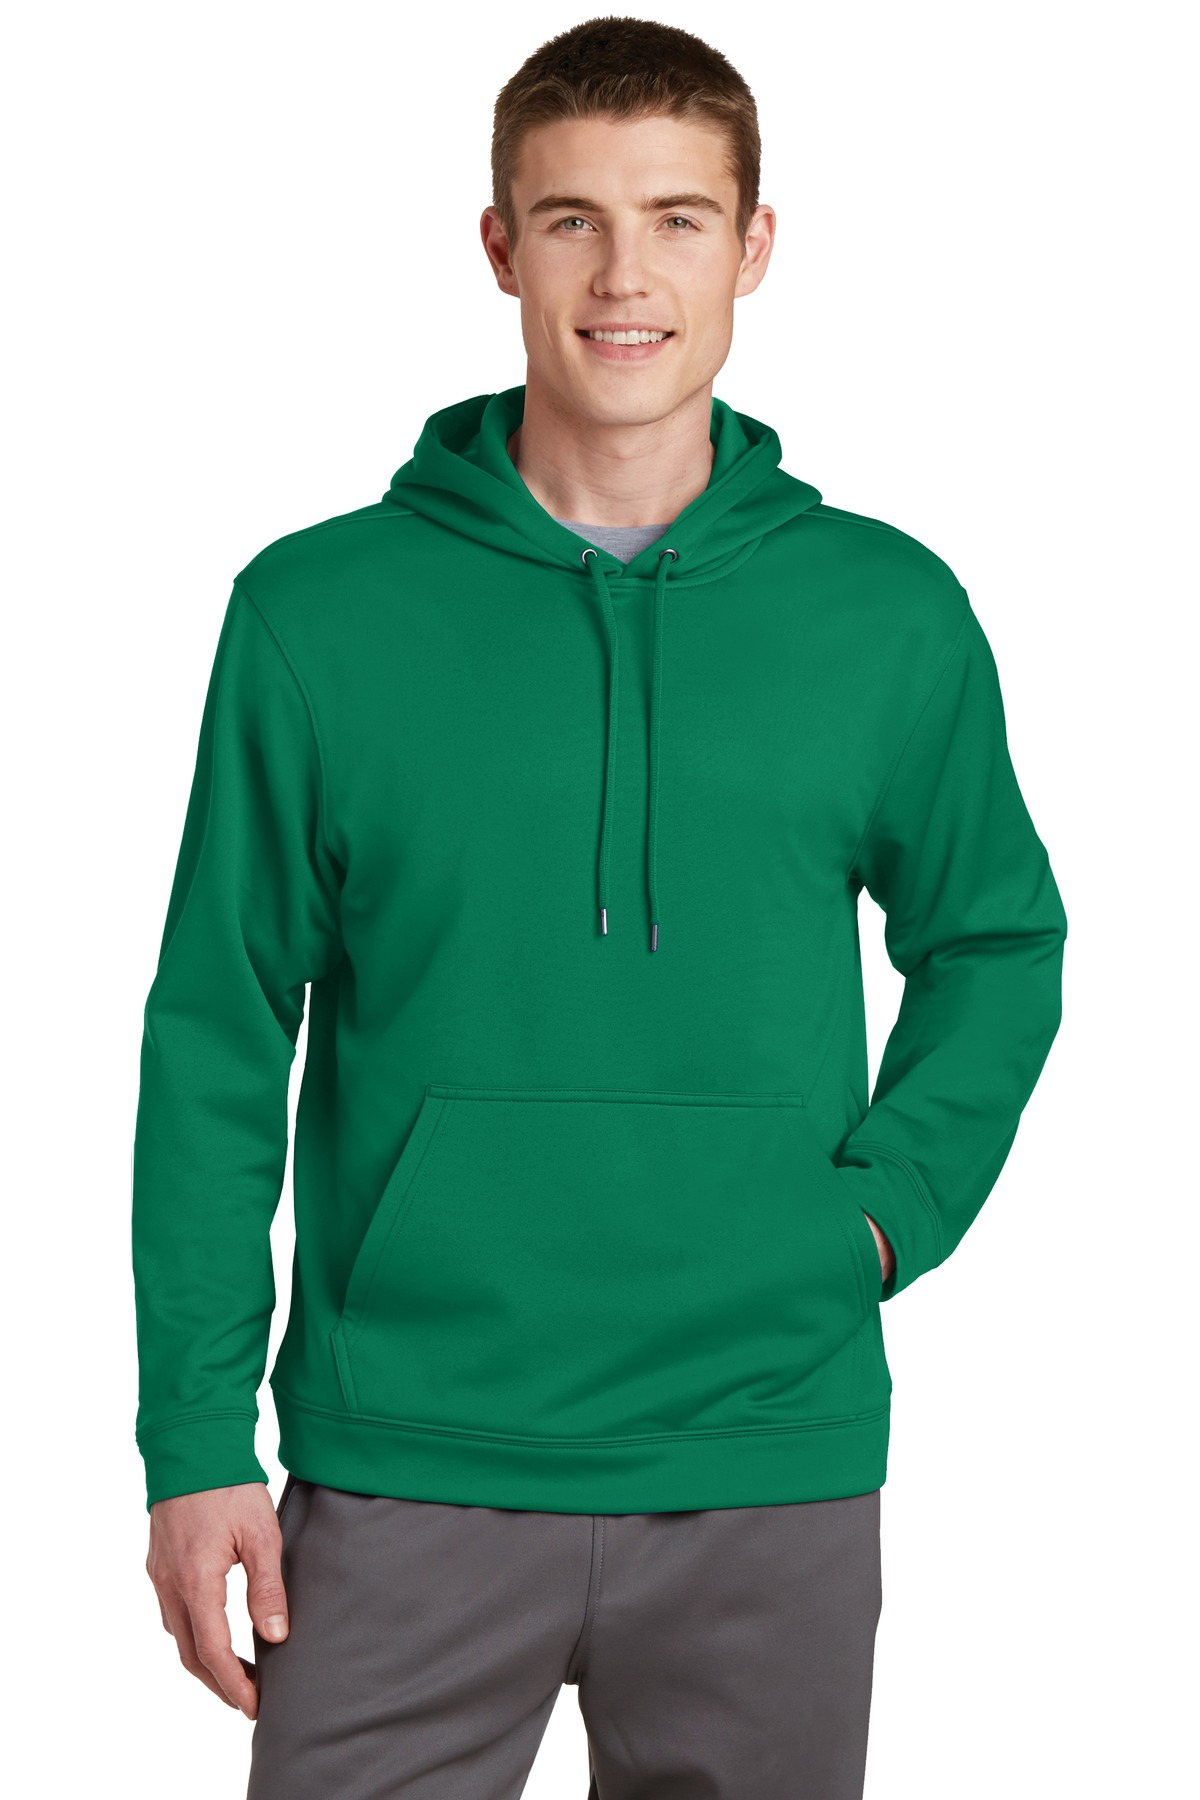 Sport-Tek ®  Sport-Wick ®  Fleece Hooded Pullover.  F244 - Kelly Green